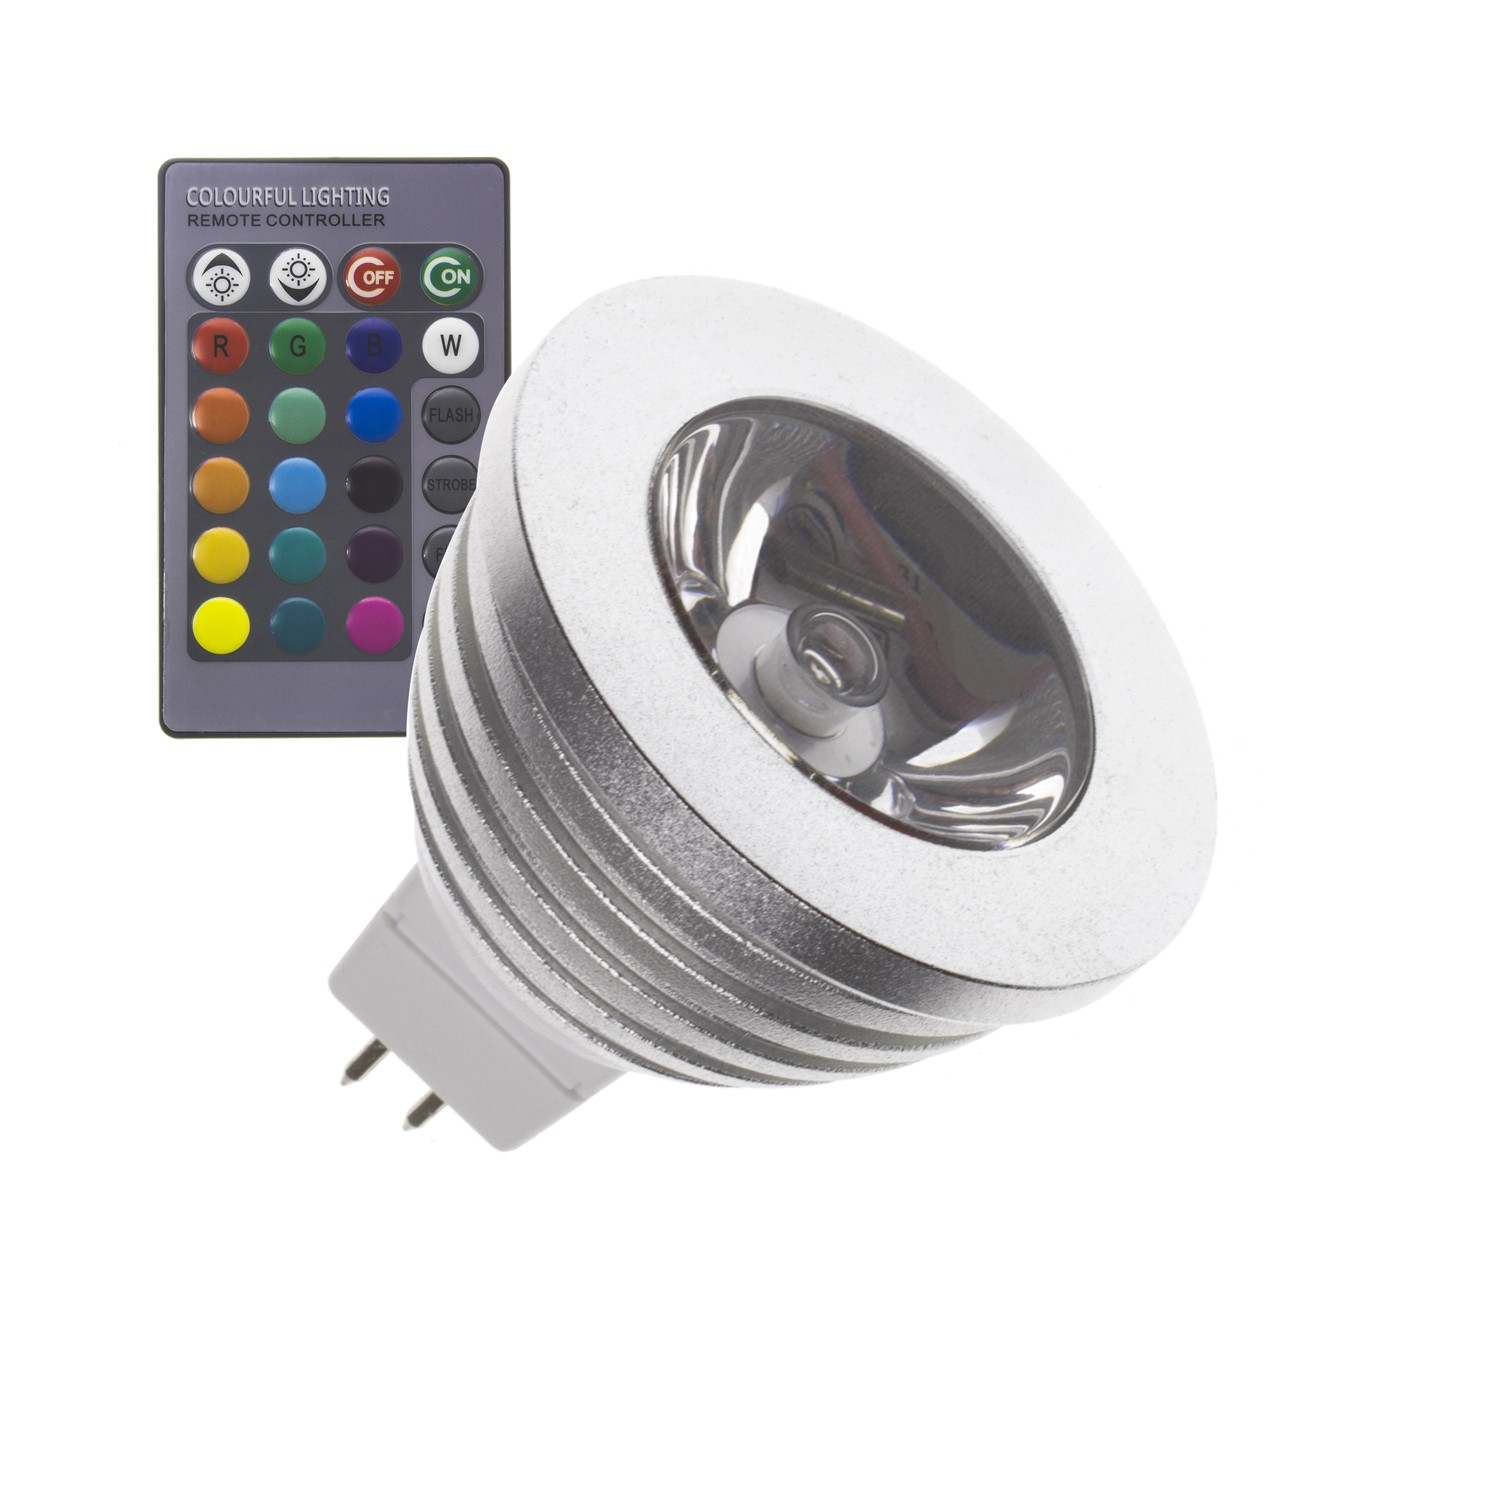 Glass Gu53 Mr16 45 5w Cob Led Lamp 220v Ledkia 3w Constant Current Ce Driver Circuit Manufacturer From